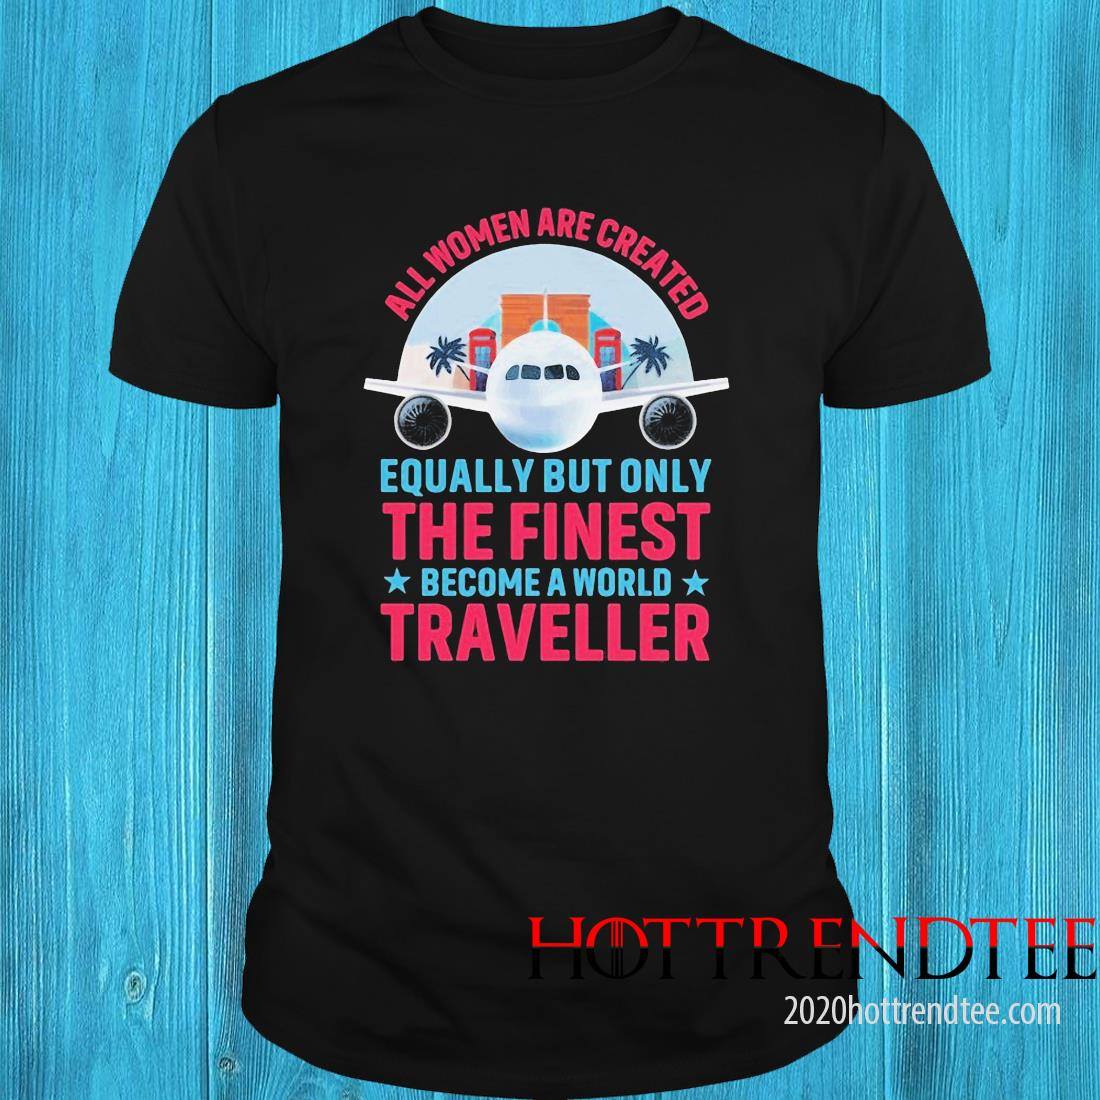 All Women Are Created Equally But Only The Finest Become A World Traveller Shirt